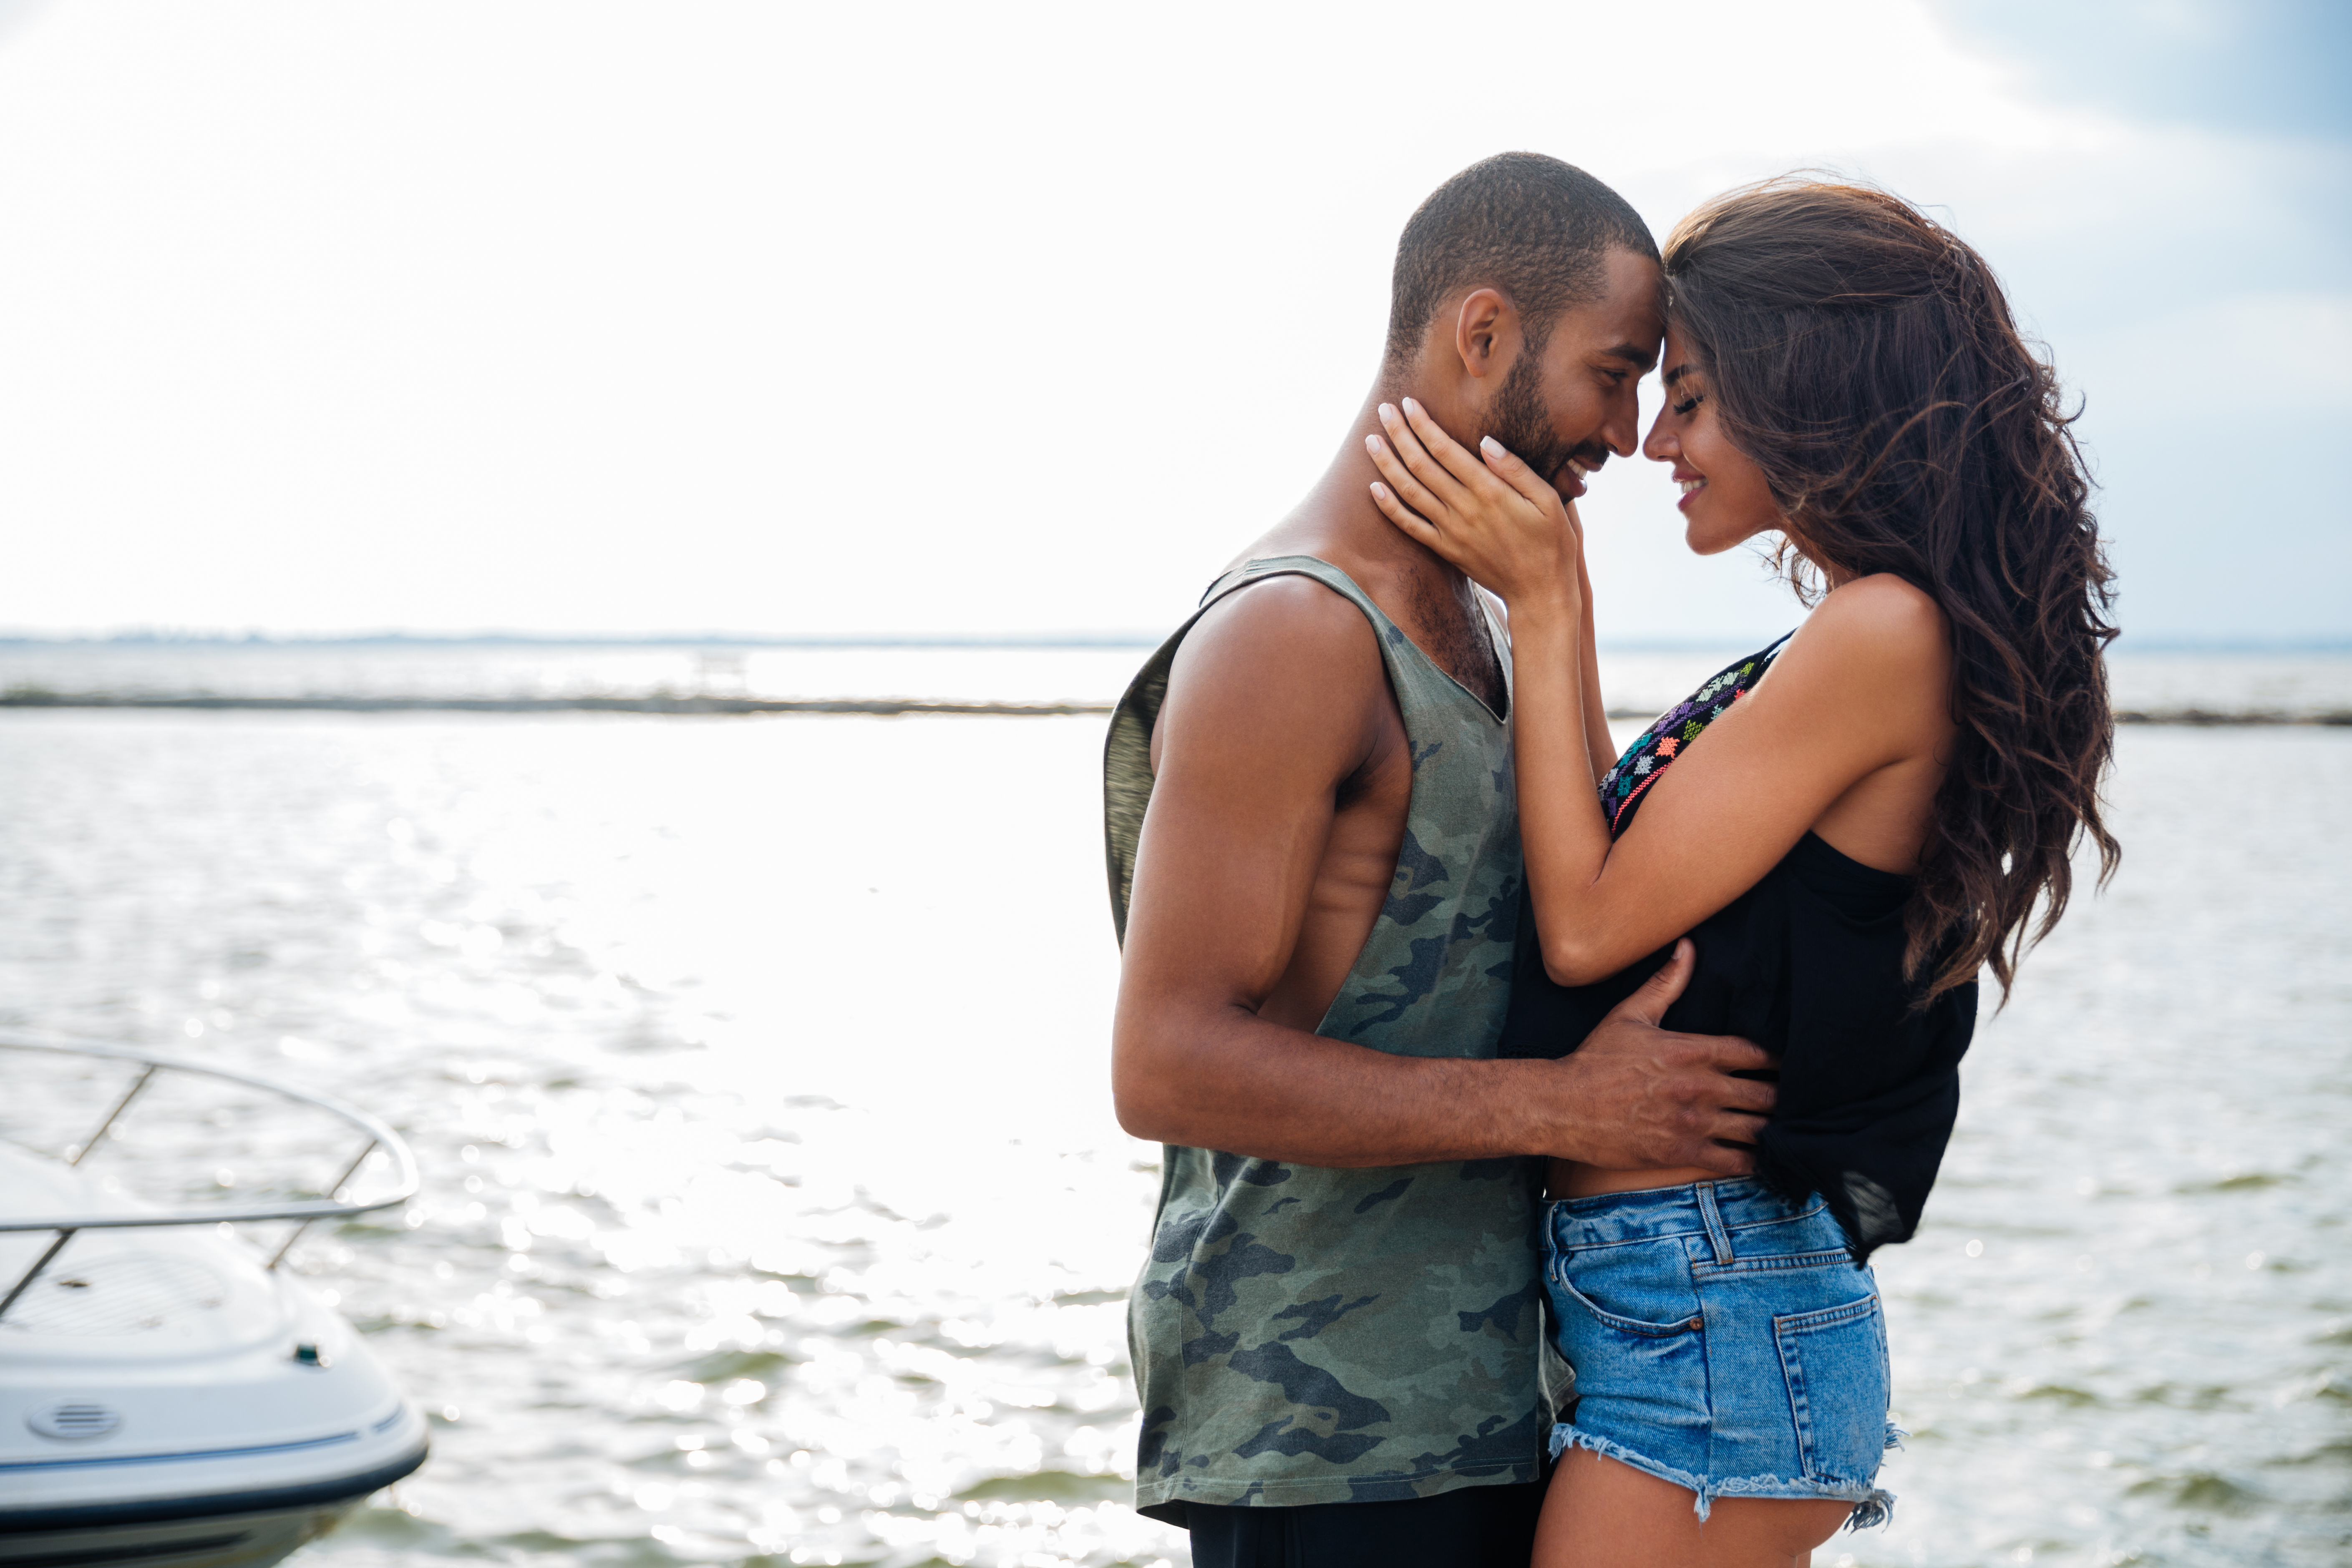 graphicstock-portrait-of-romantic-young-beautiful-couple-in-love-embracing-at-the-pier_rdxLh7NHnx